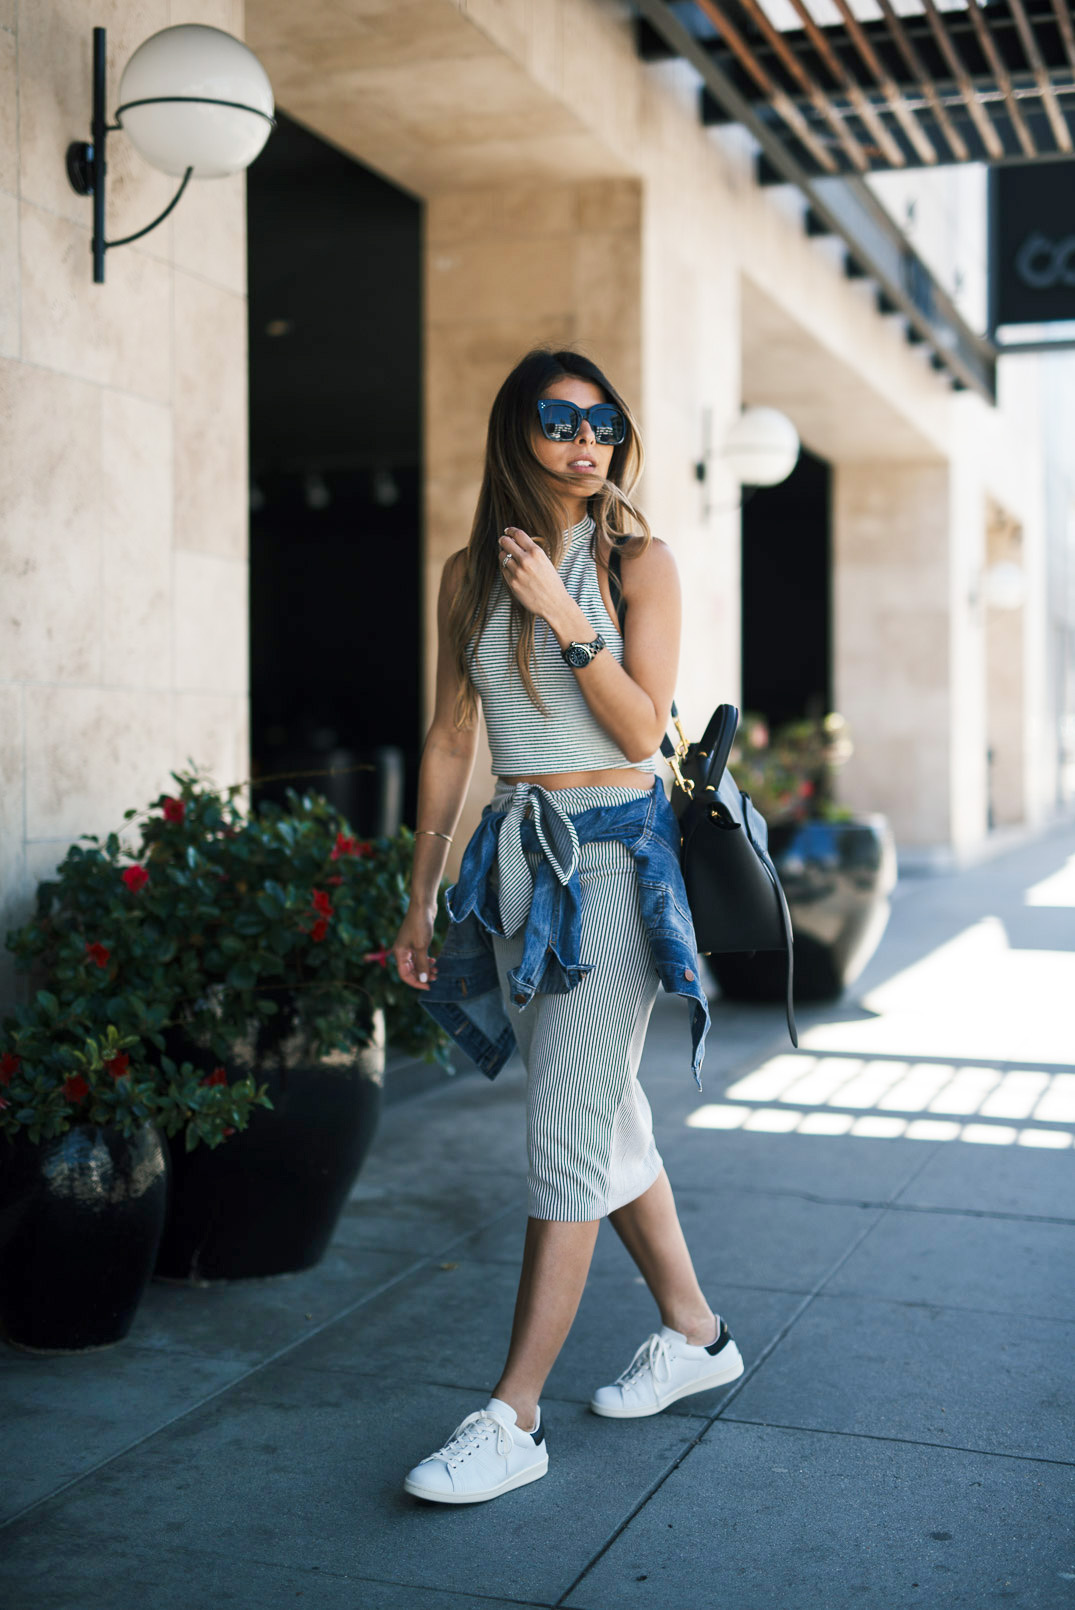 A crop top and midi skirt two piece is always a winner! Pam Hetlinger wears this super cute summer style with a pair of sleek white sneakers for a casual and street-ready look! Top/Skirt: Club Monaco, Sneakers: Isabel Marant.